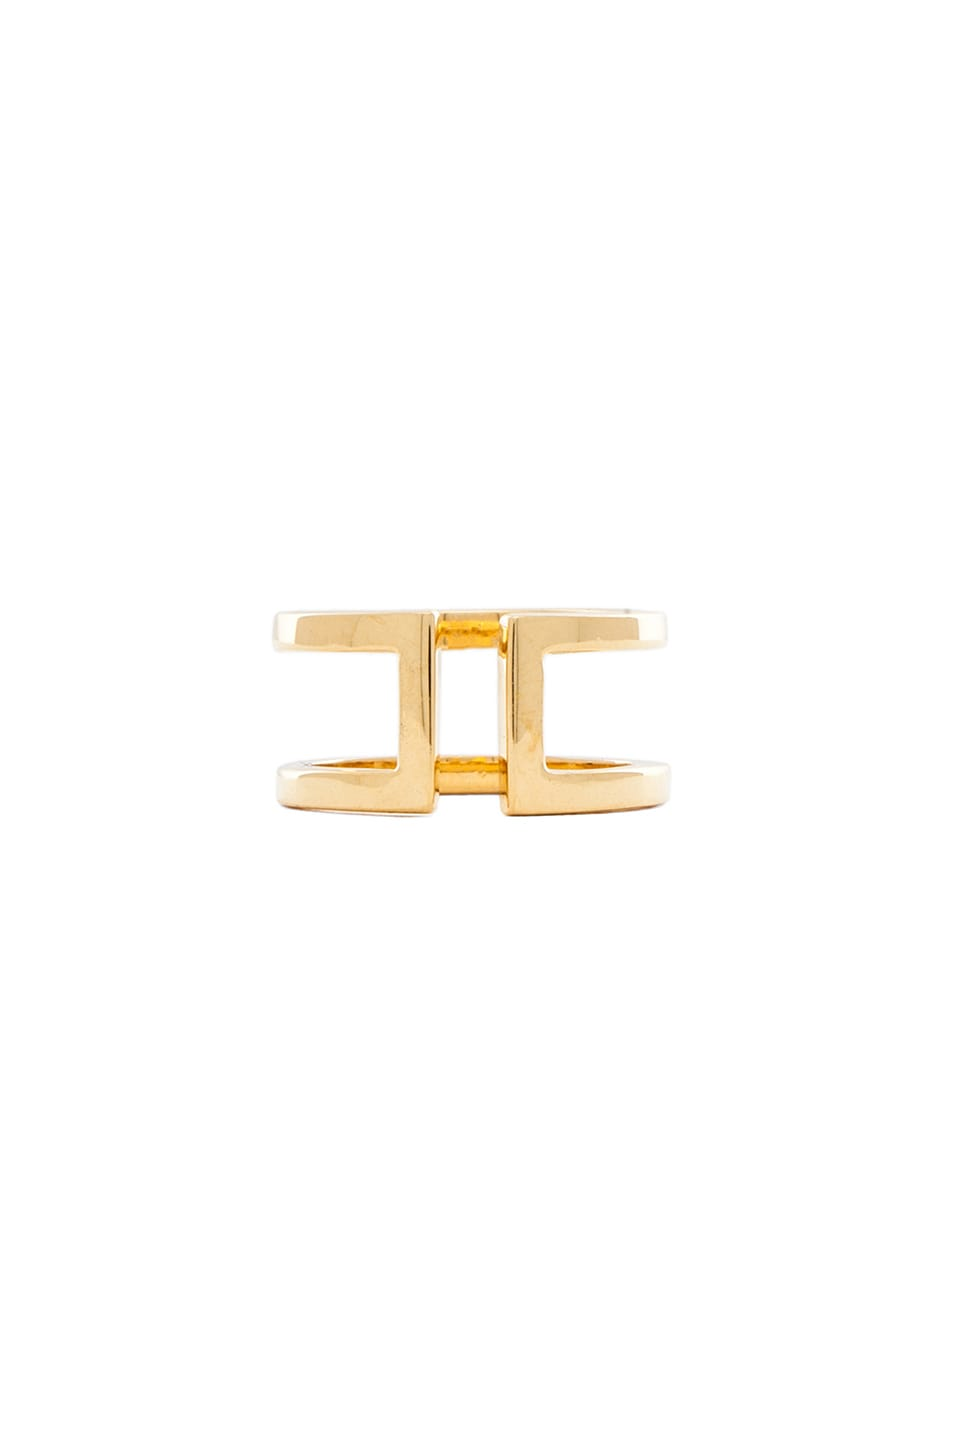 Jacquie Aiche Cut Out Ring in Gold Vermeil